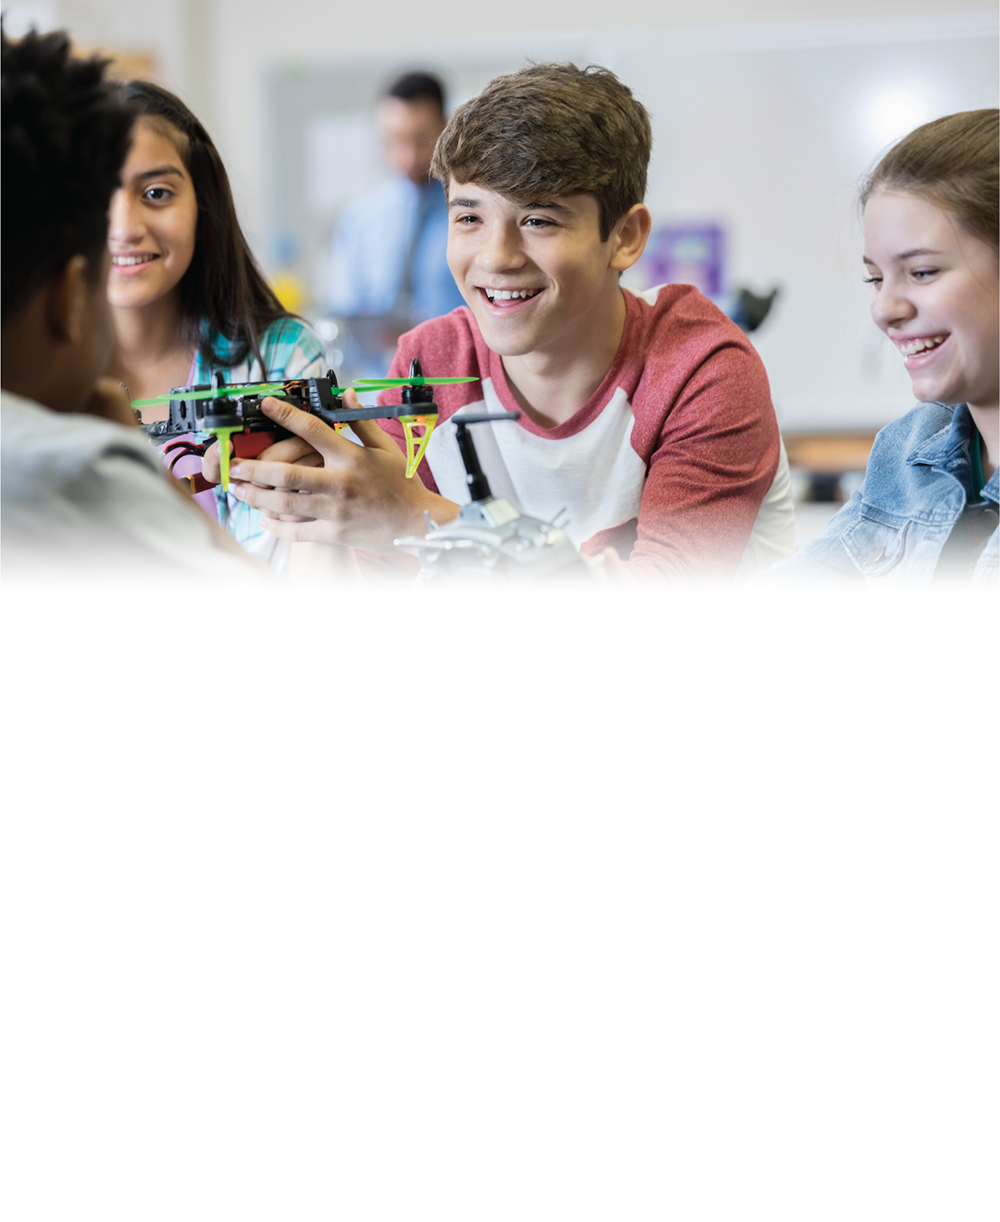 Leading Project-Based Learning With Technology